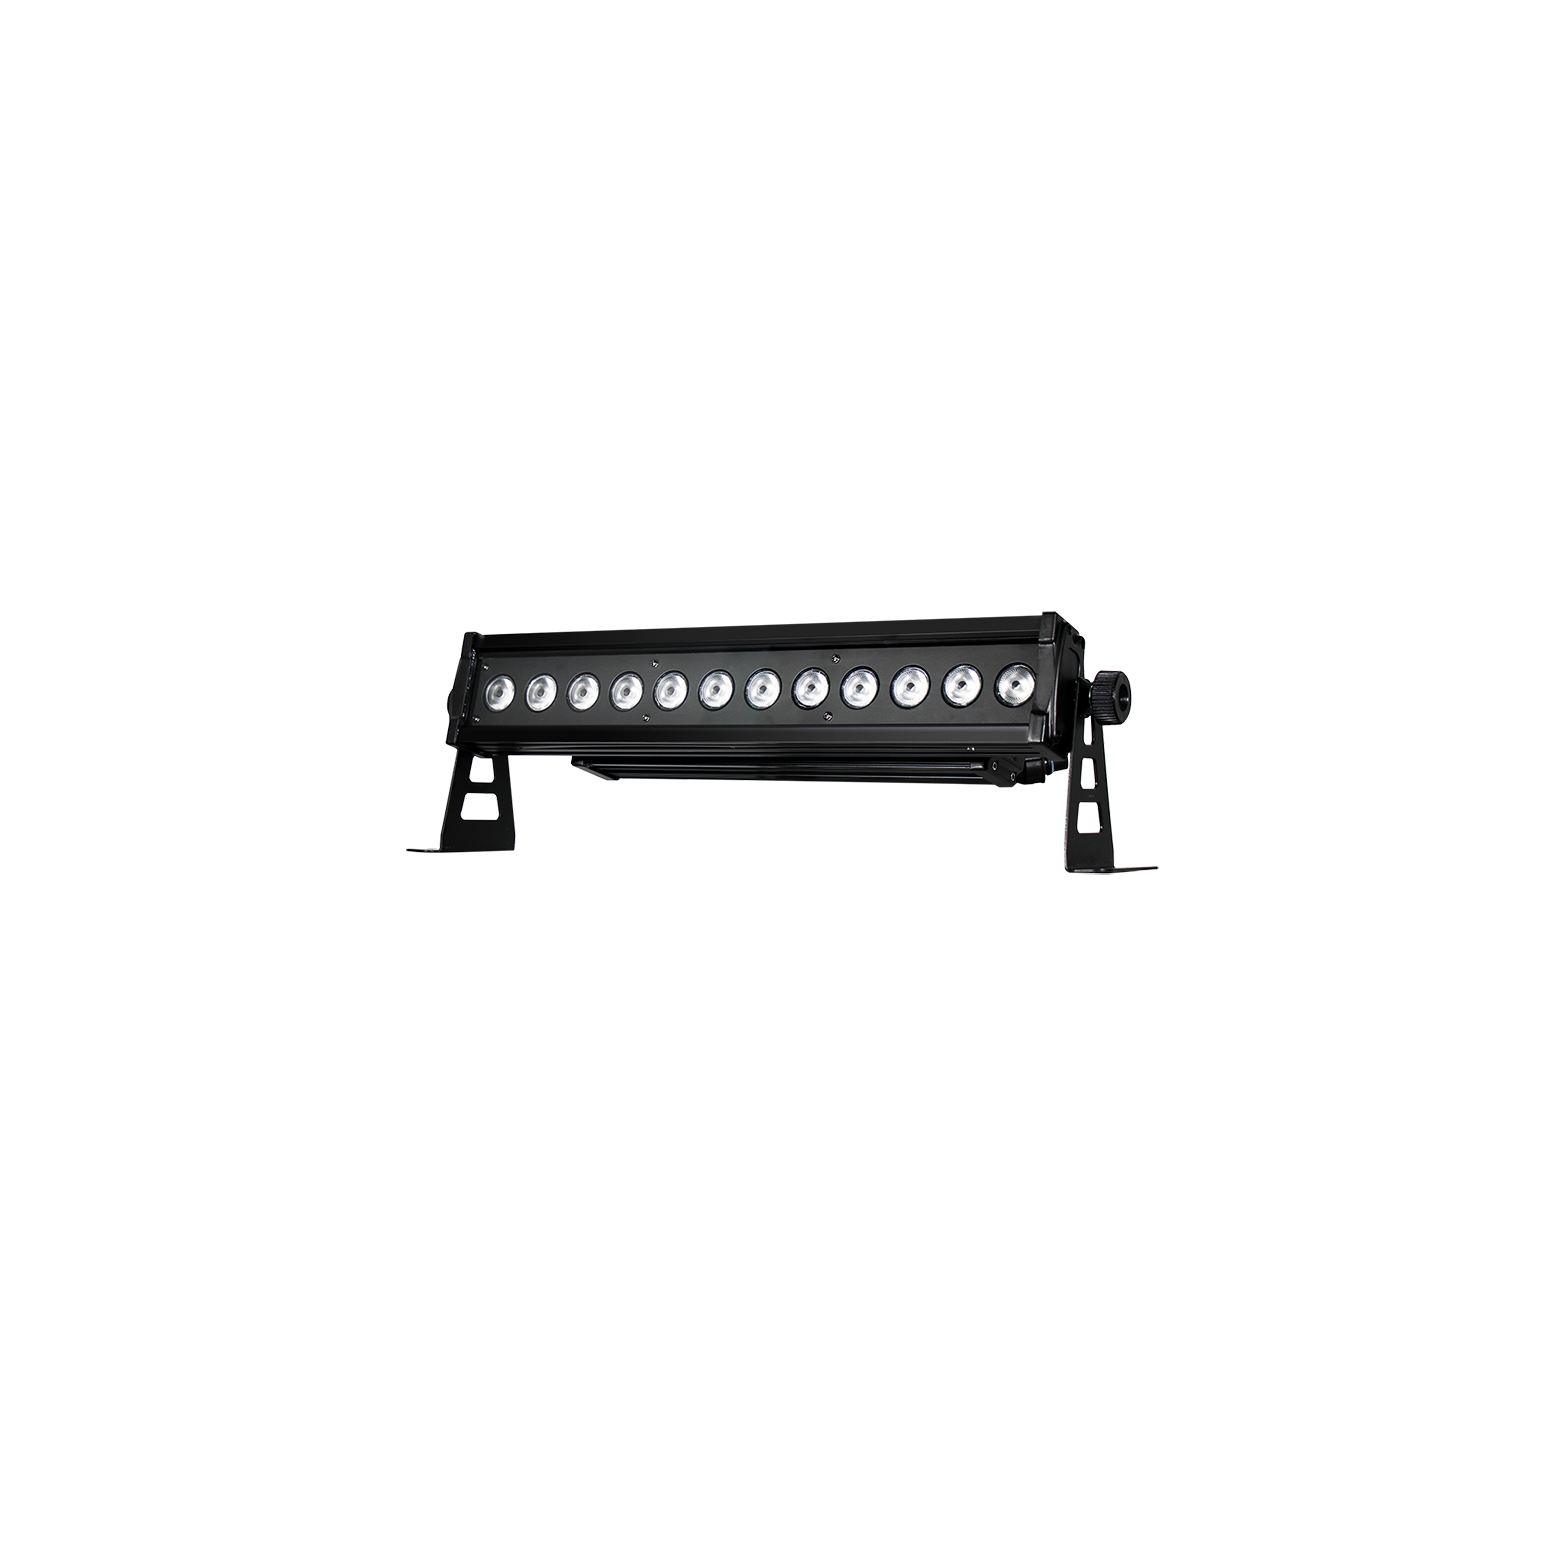 Architectural Outdoor Lighting Equipment Architectural Lighting Suppliers Architectural Lighting Manufacturers